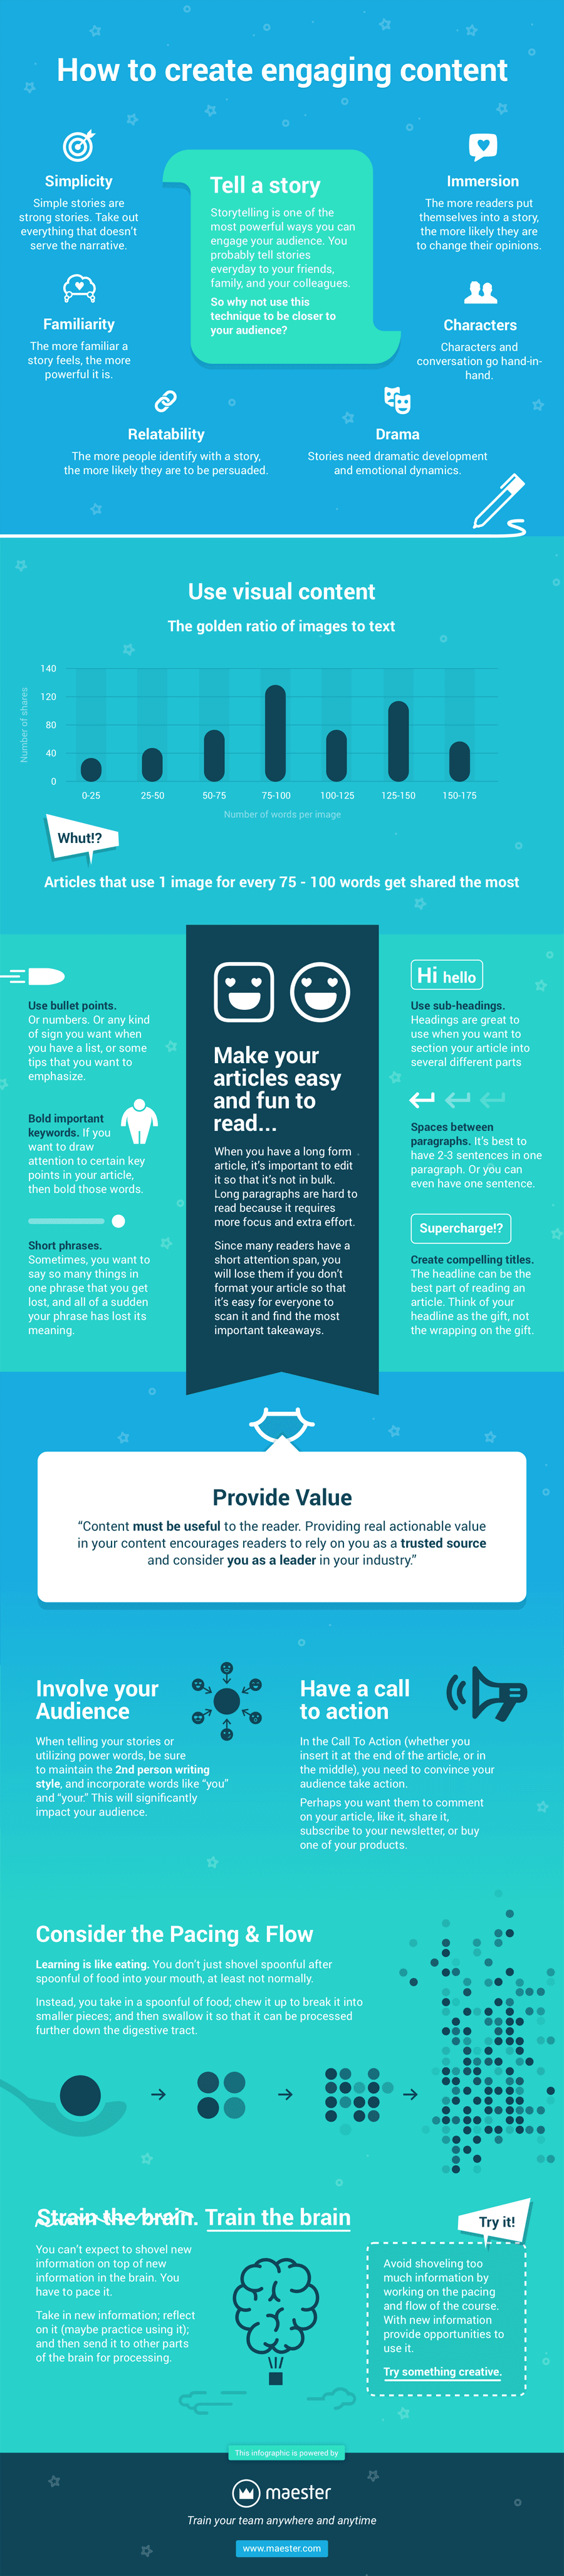 How to Create Engaging Content - #infographic